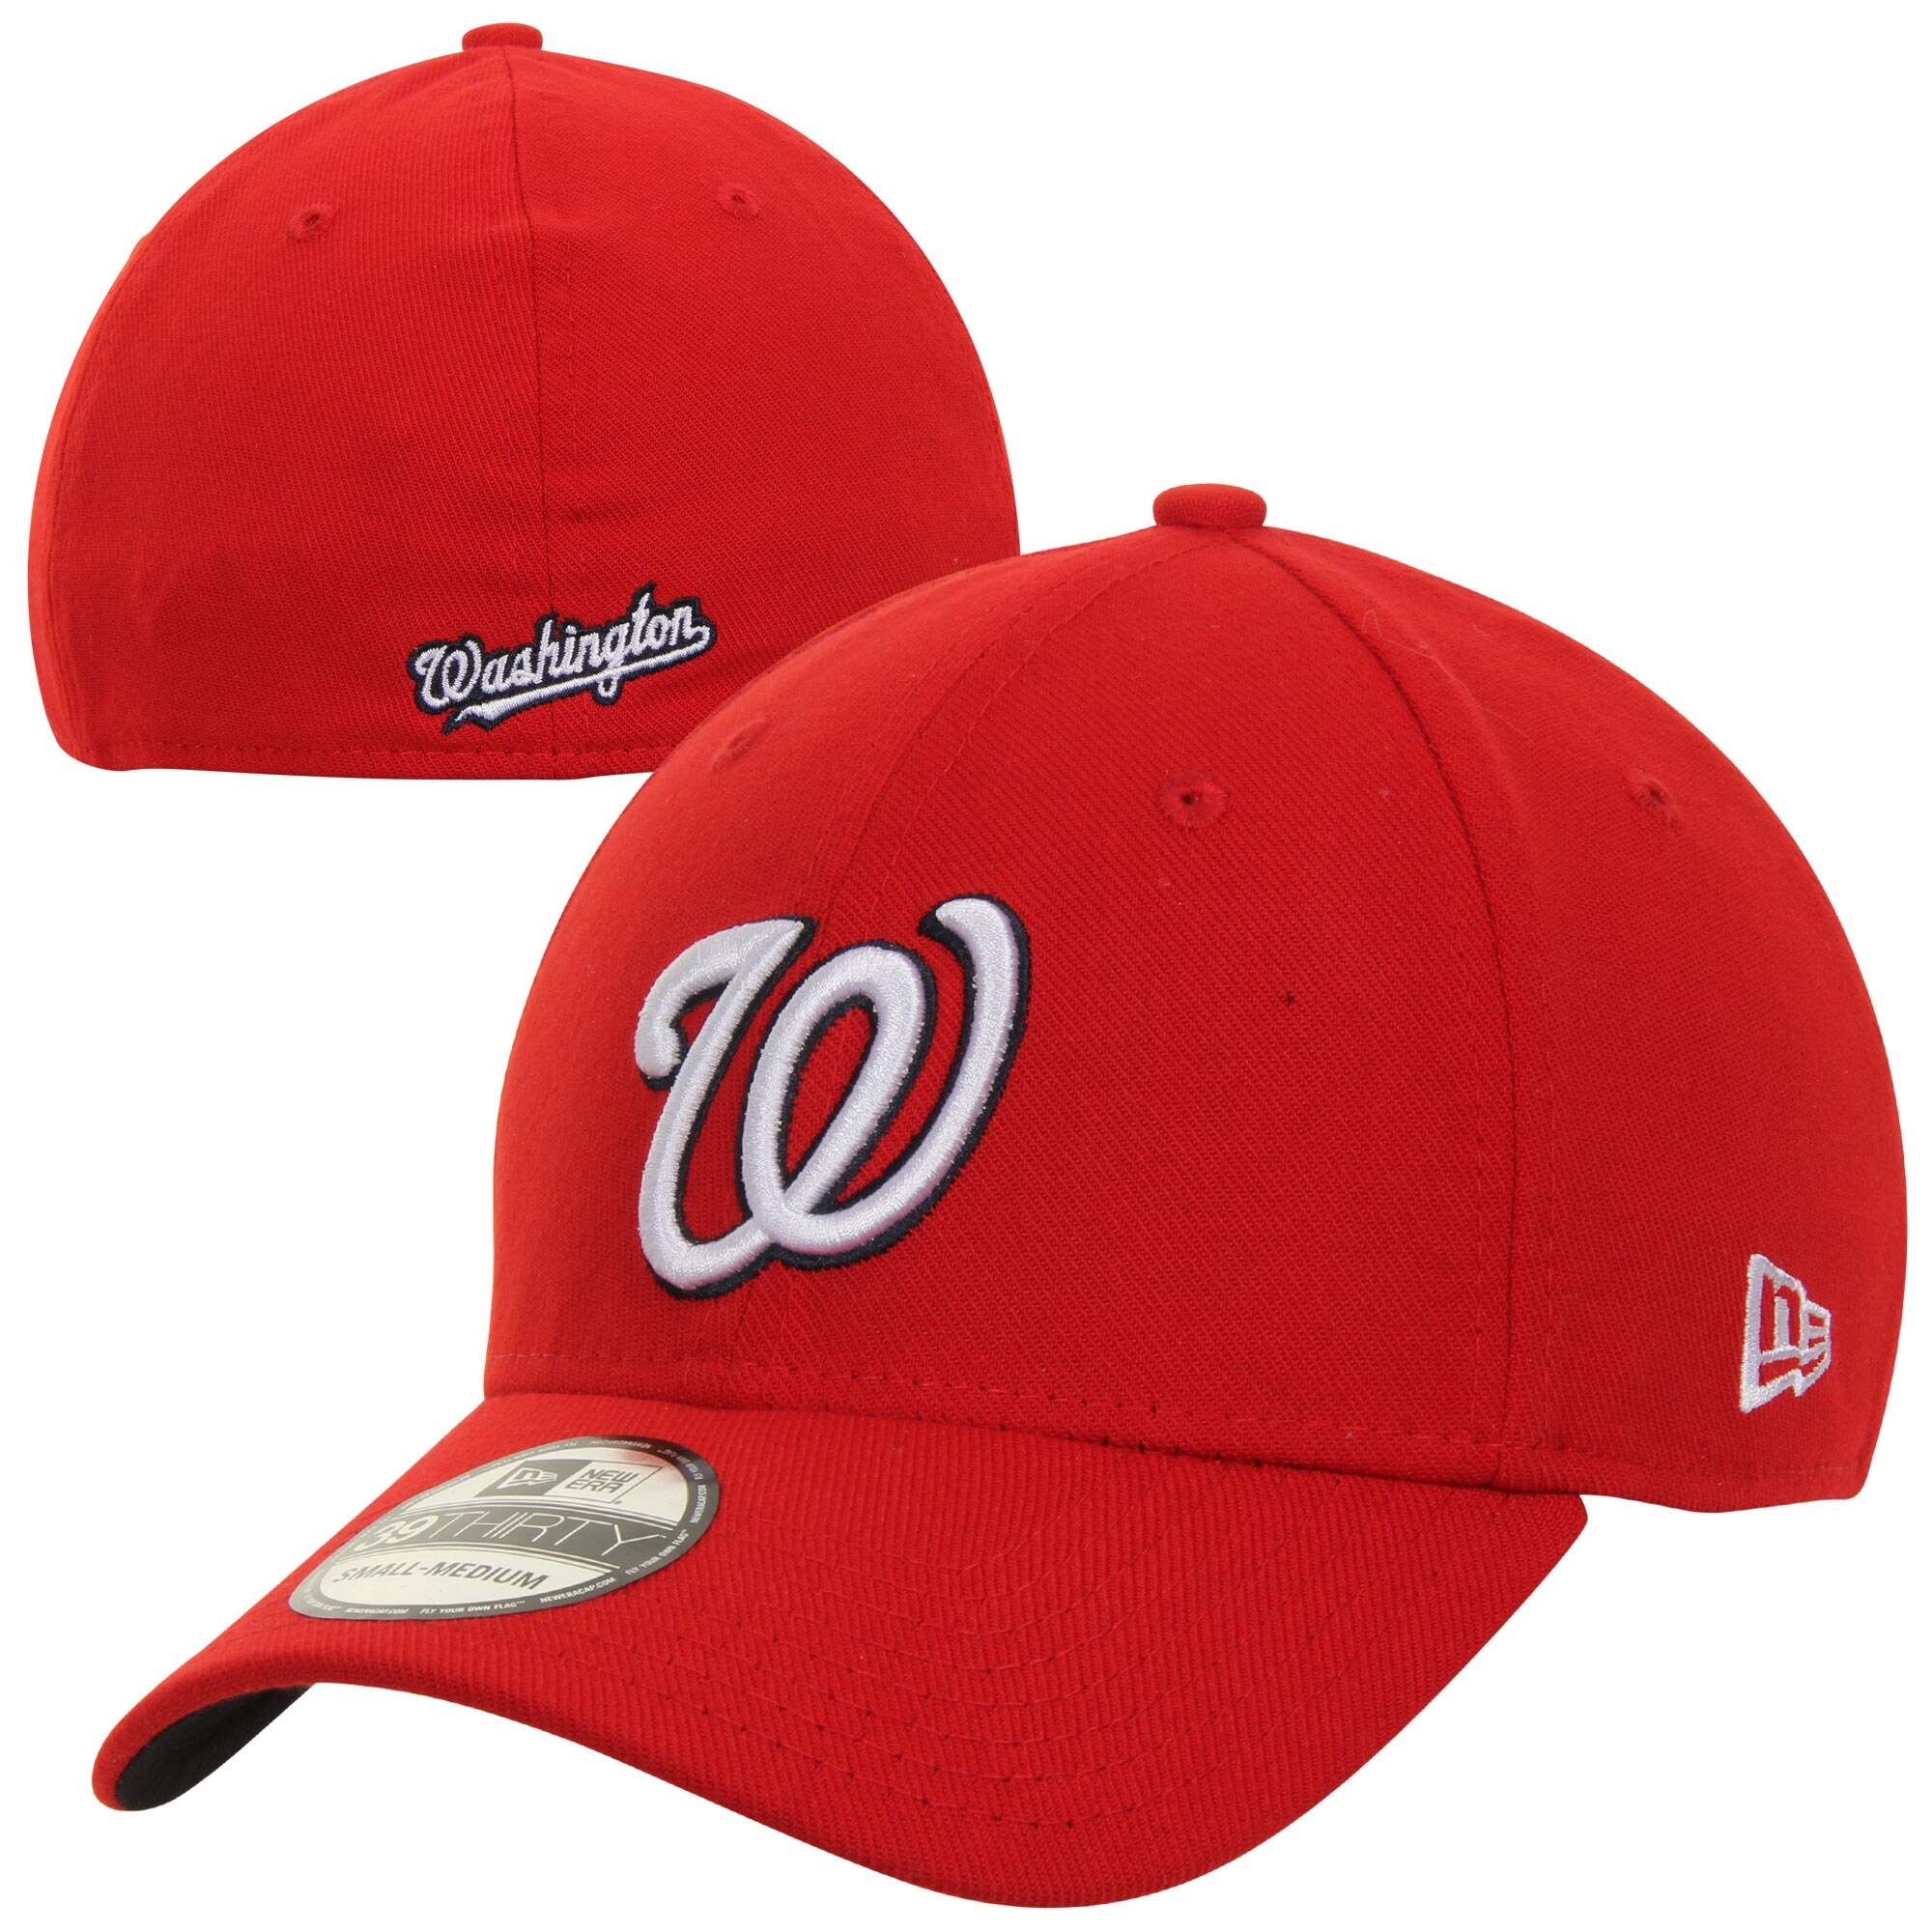 Washington Nationals New Era MLB Team Classic Alternate 39THIRTY Flex Hat - Red